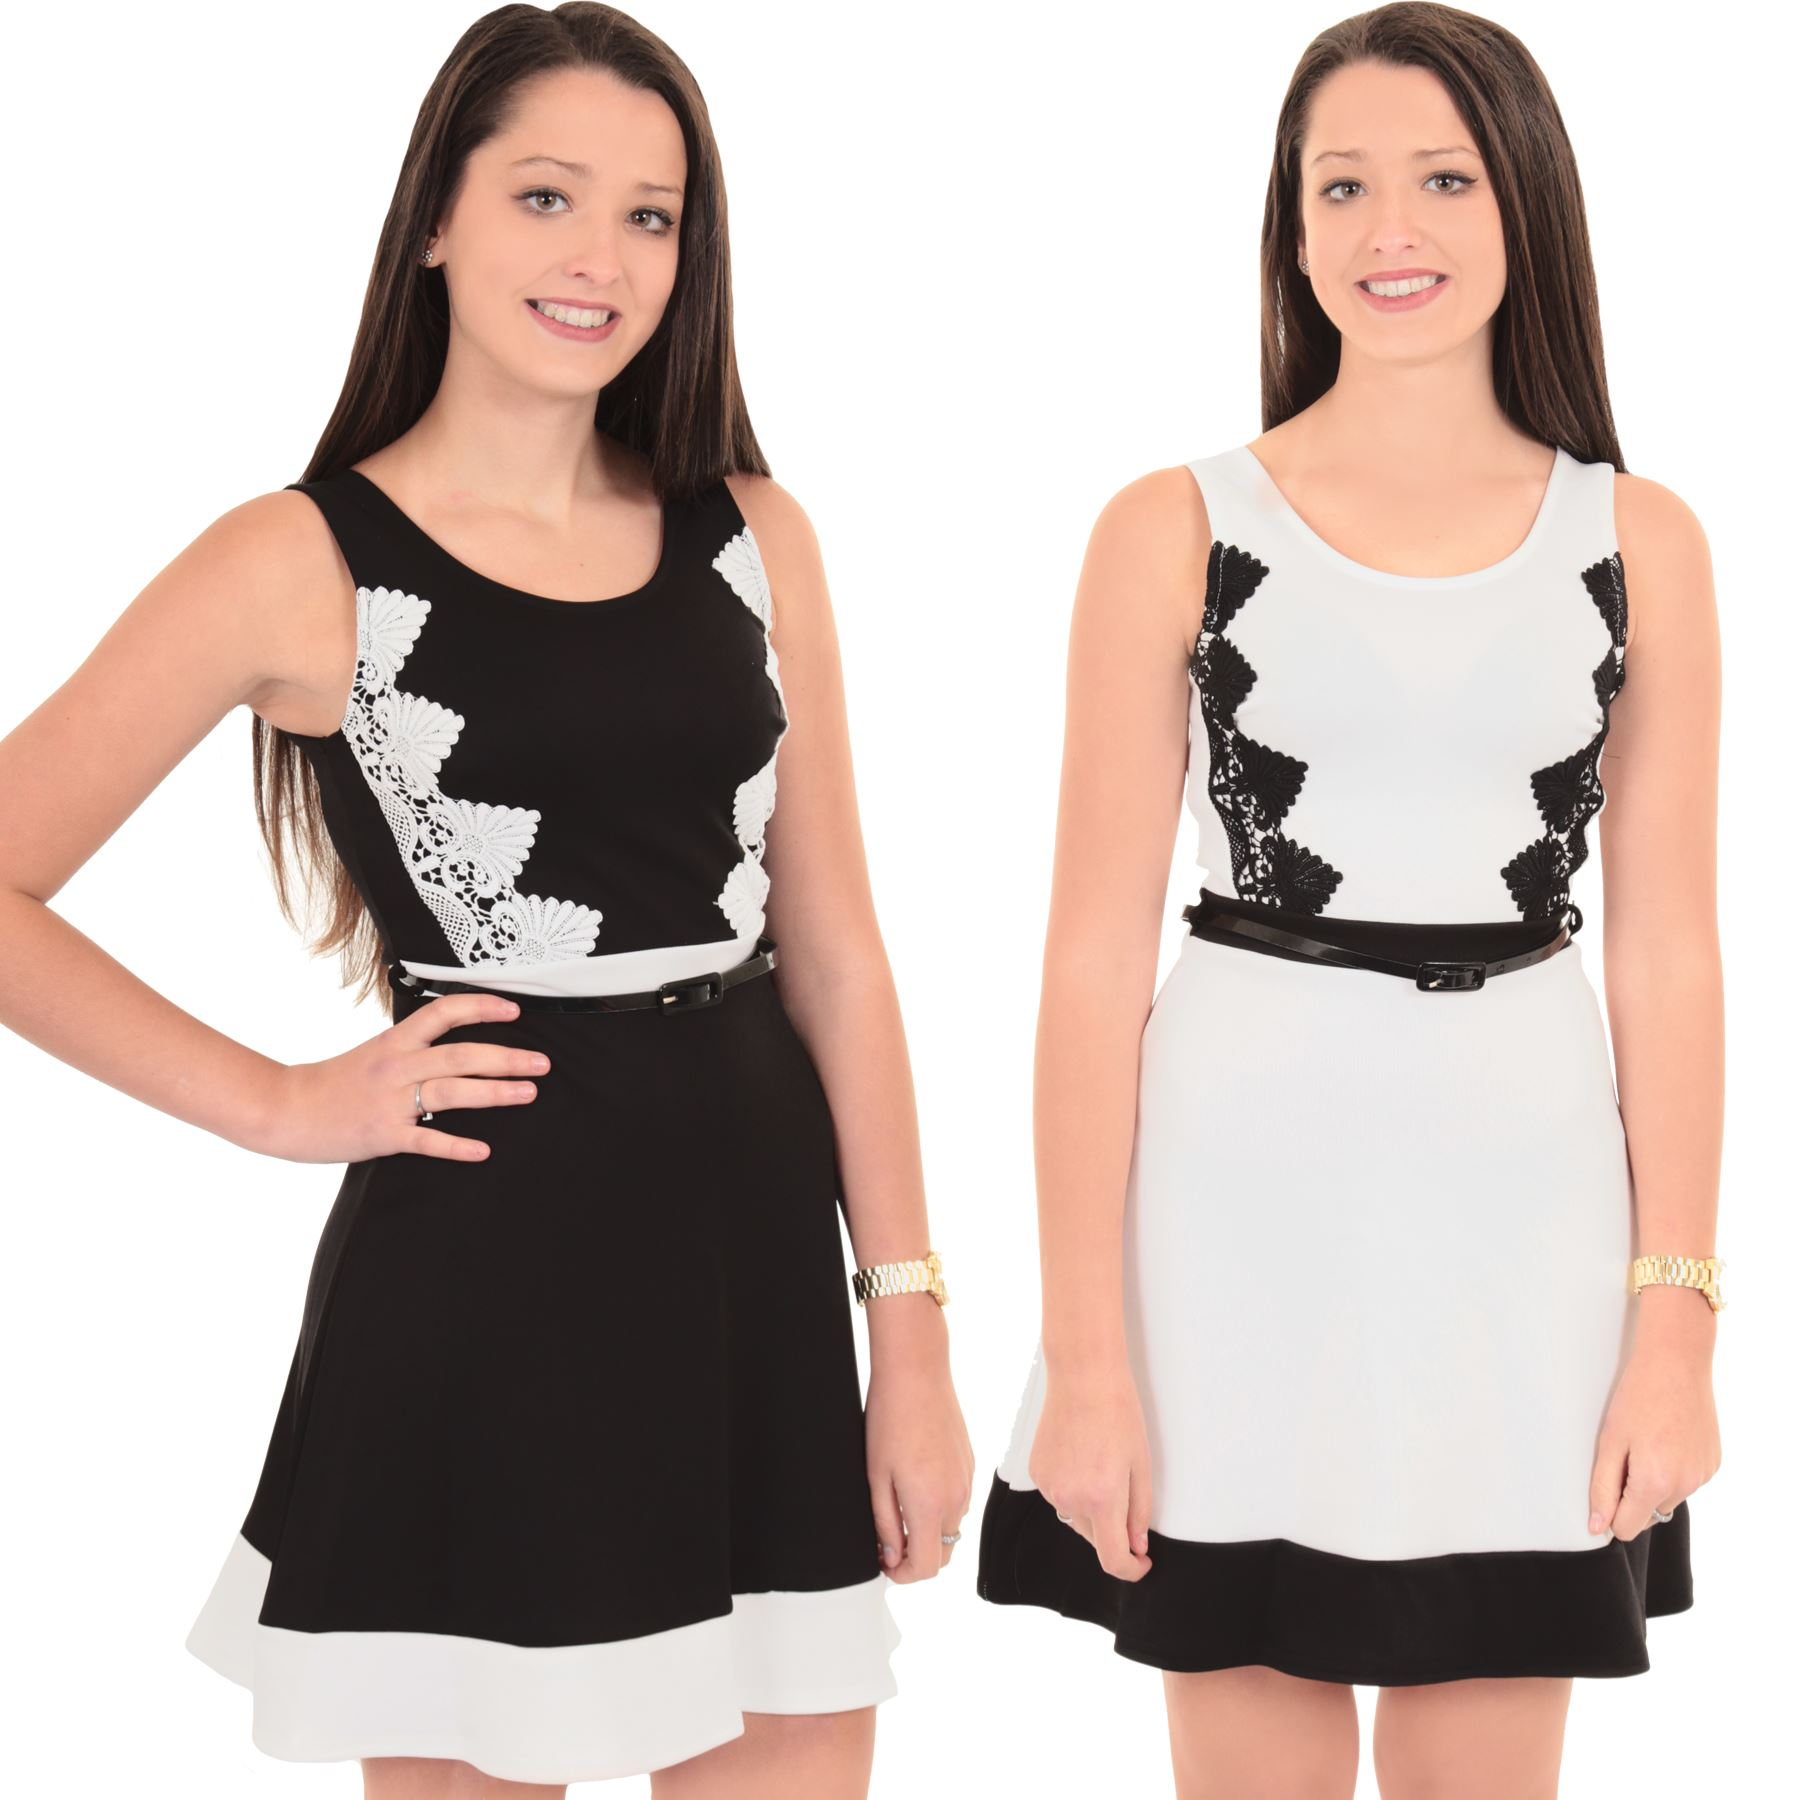 Ladies Plus Size Sleeveless 2 In 1 Colour Contrast Belted Skater Party Dress Top